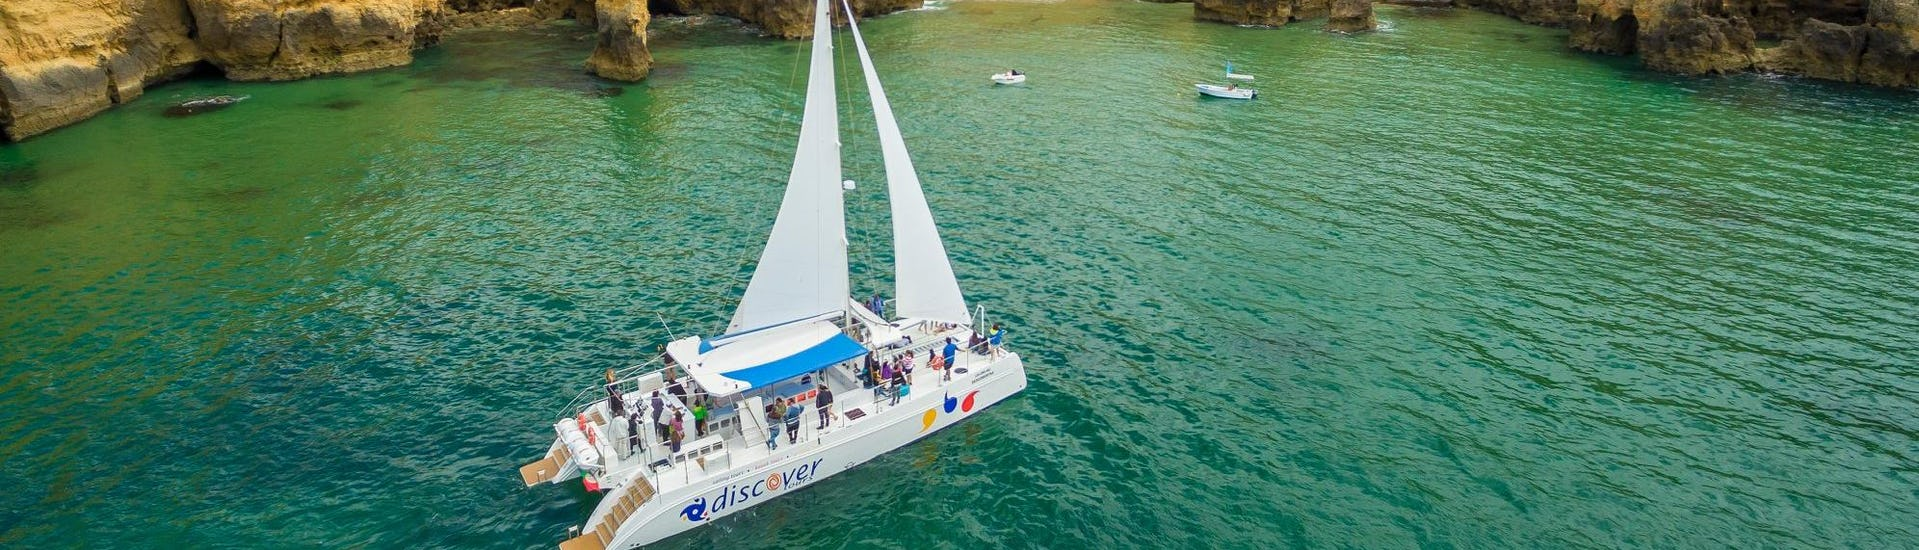 catamaran-tour-summer-fun-high-season-from-lagos-discover-tours-hero